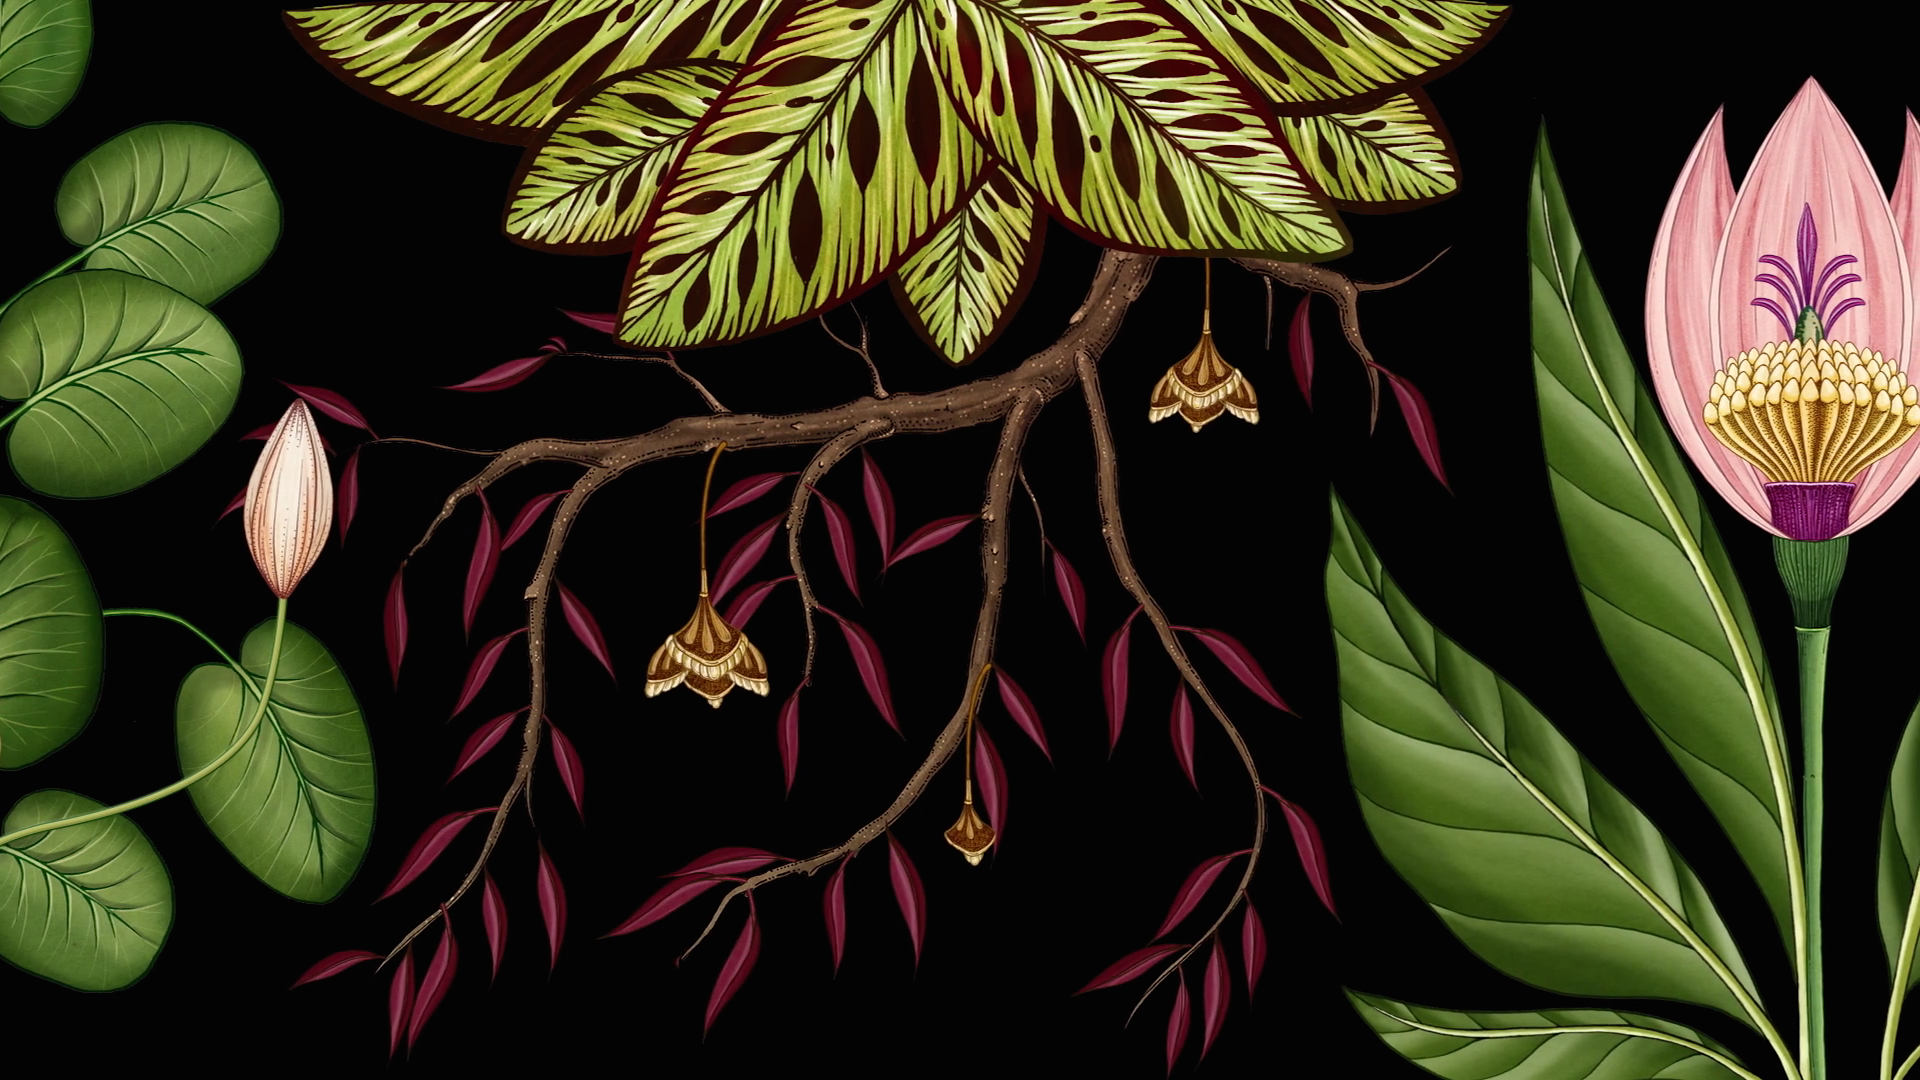 stills_from_publicis_botanical_an_animated_botanical_wallpaper-3.png